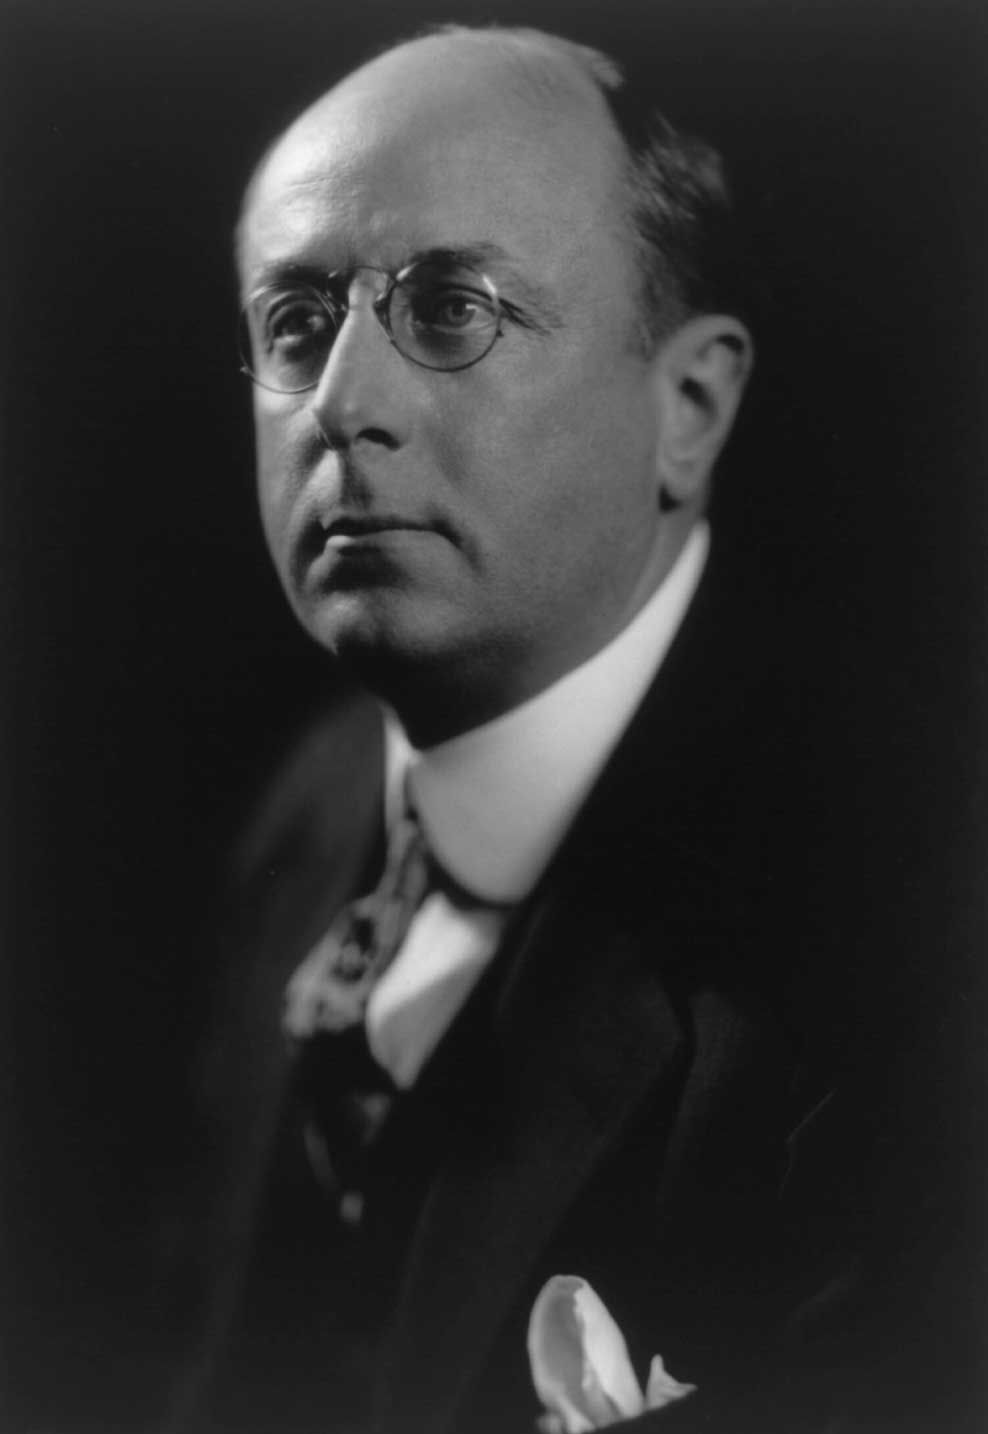 https://upload.wikimedia.org/wikipedia/commons/7/7d/Homer_Cummings,_Harris_%26_Ewing_photo_portrait,_1920.jpg